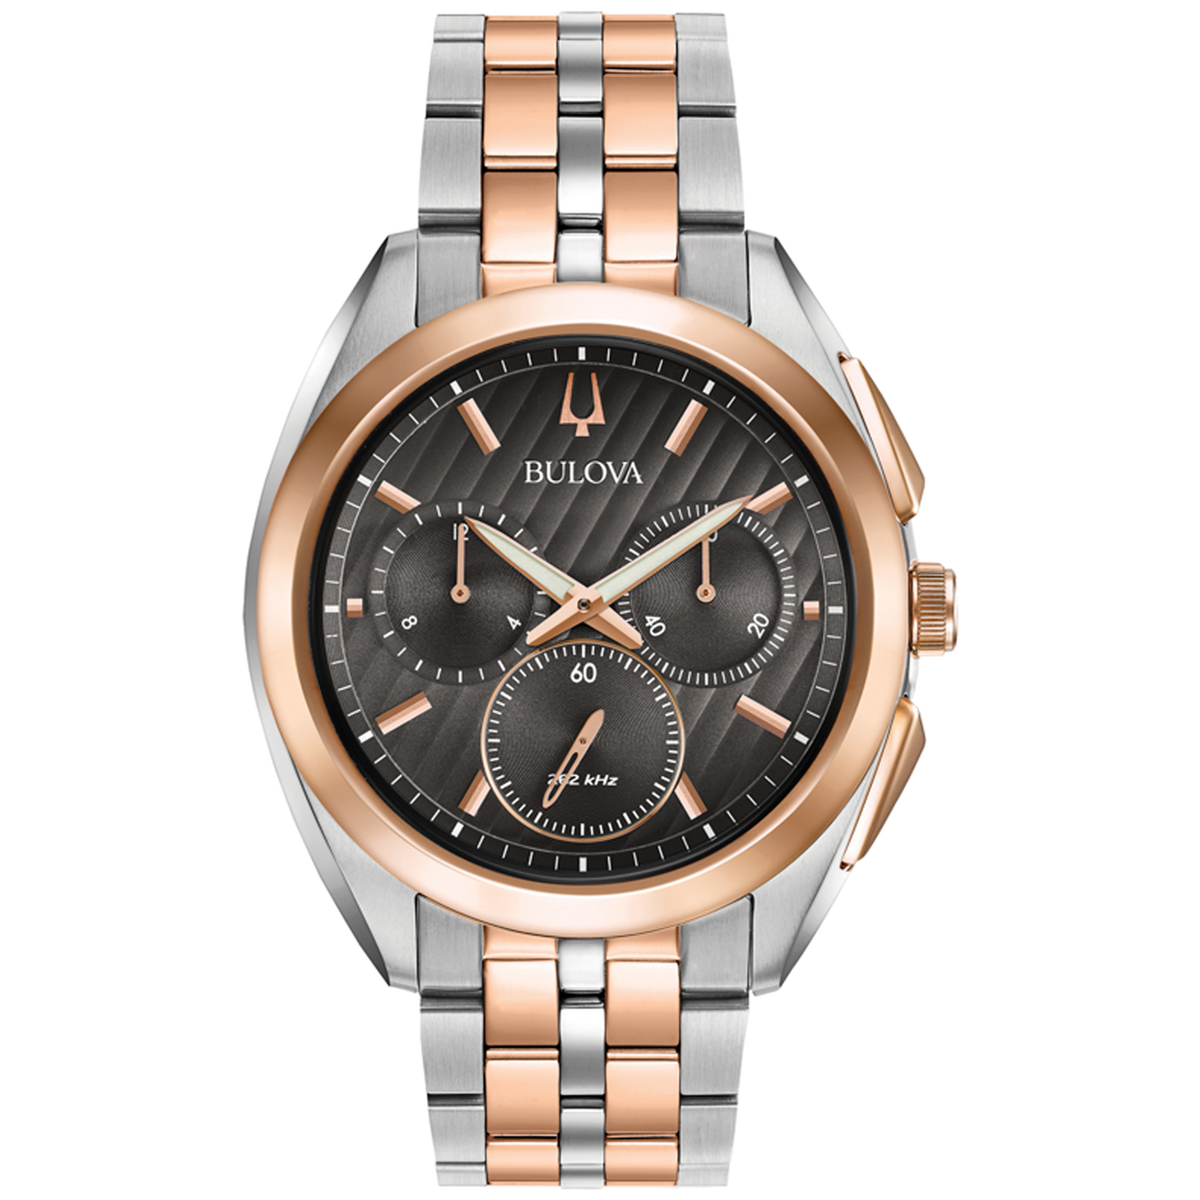 Bulova - Men's Curv Chronograph Watch - Two Tone Rose Gold